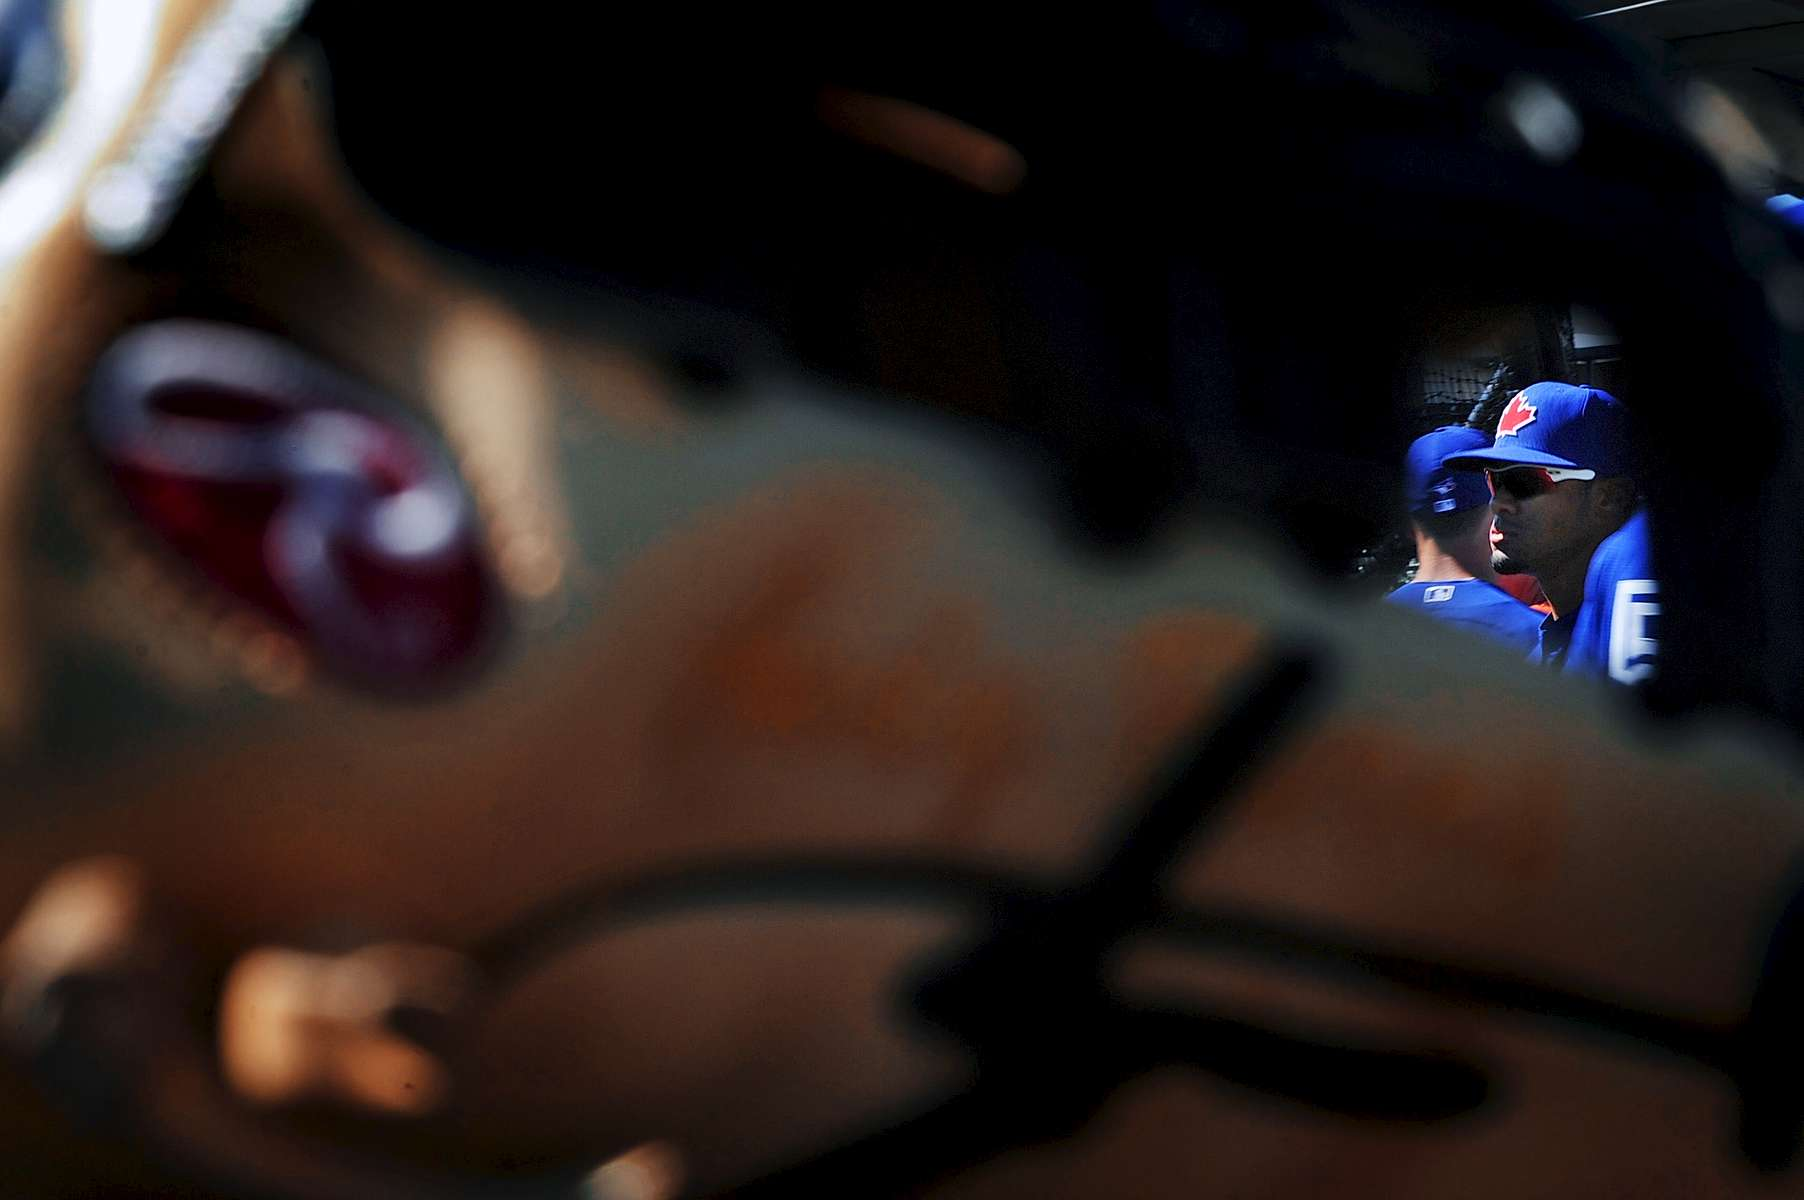 Toronto Blue Jays left fielder Melky Cabrera (53) is seen through a baseball glove warms up before facing the Baltimore Orioles in a spring training exhibition game at Ed Smith Stadium on Saturday, March 1, 2014 in Sarasota, Fla.